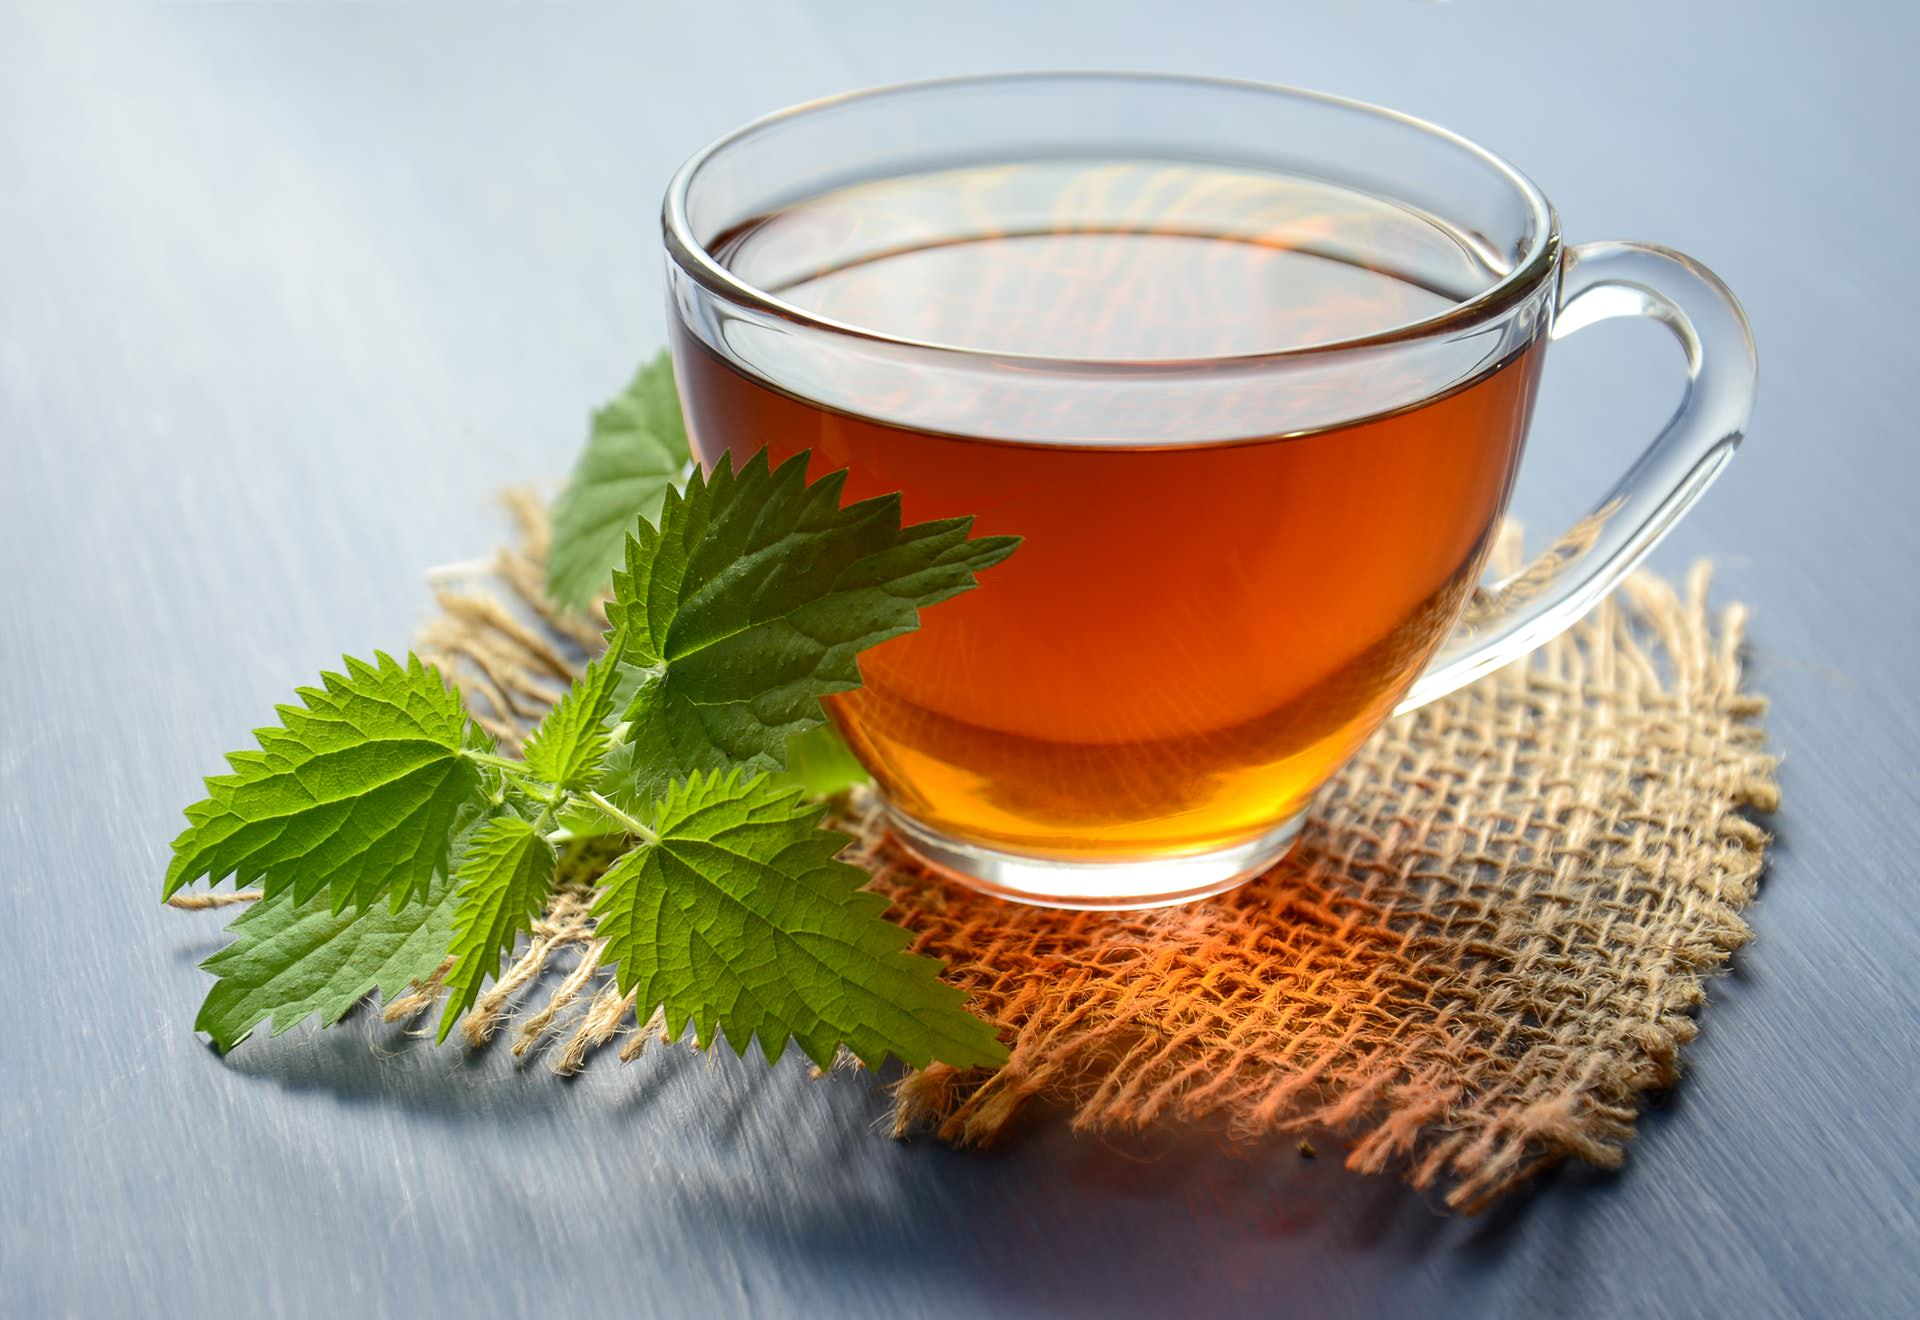 Earl Grey Tea - 8 Excellent Health Benefits and Side Effects